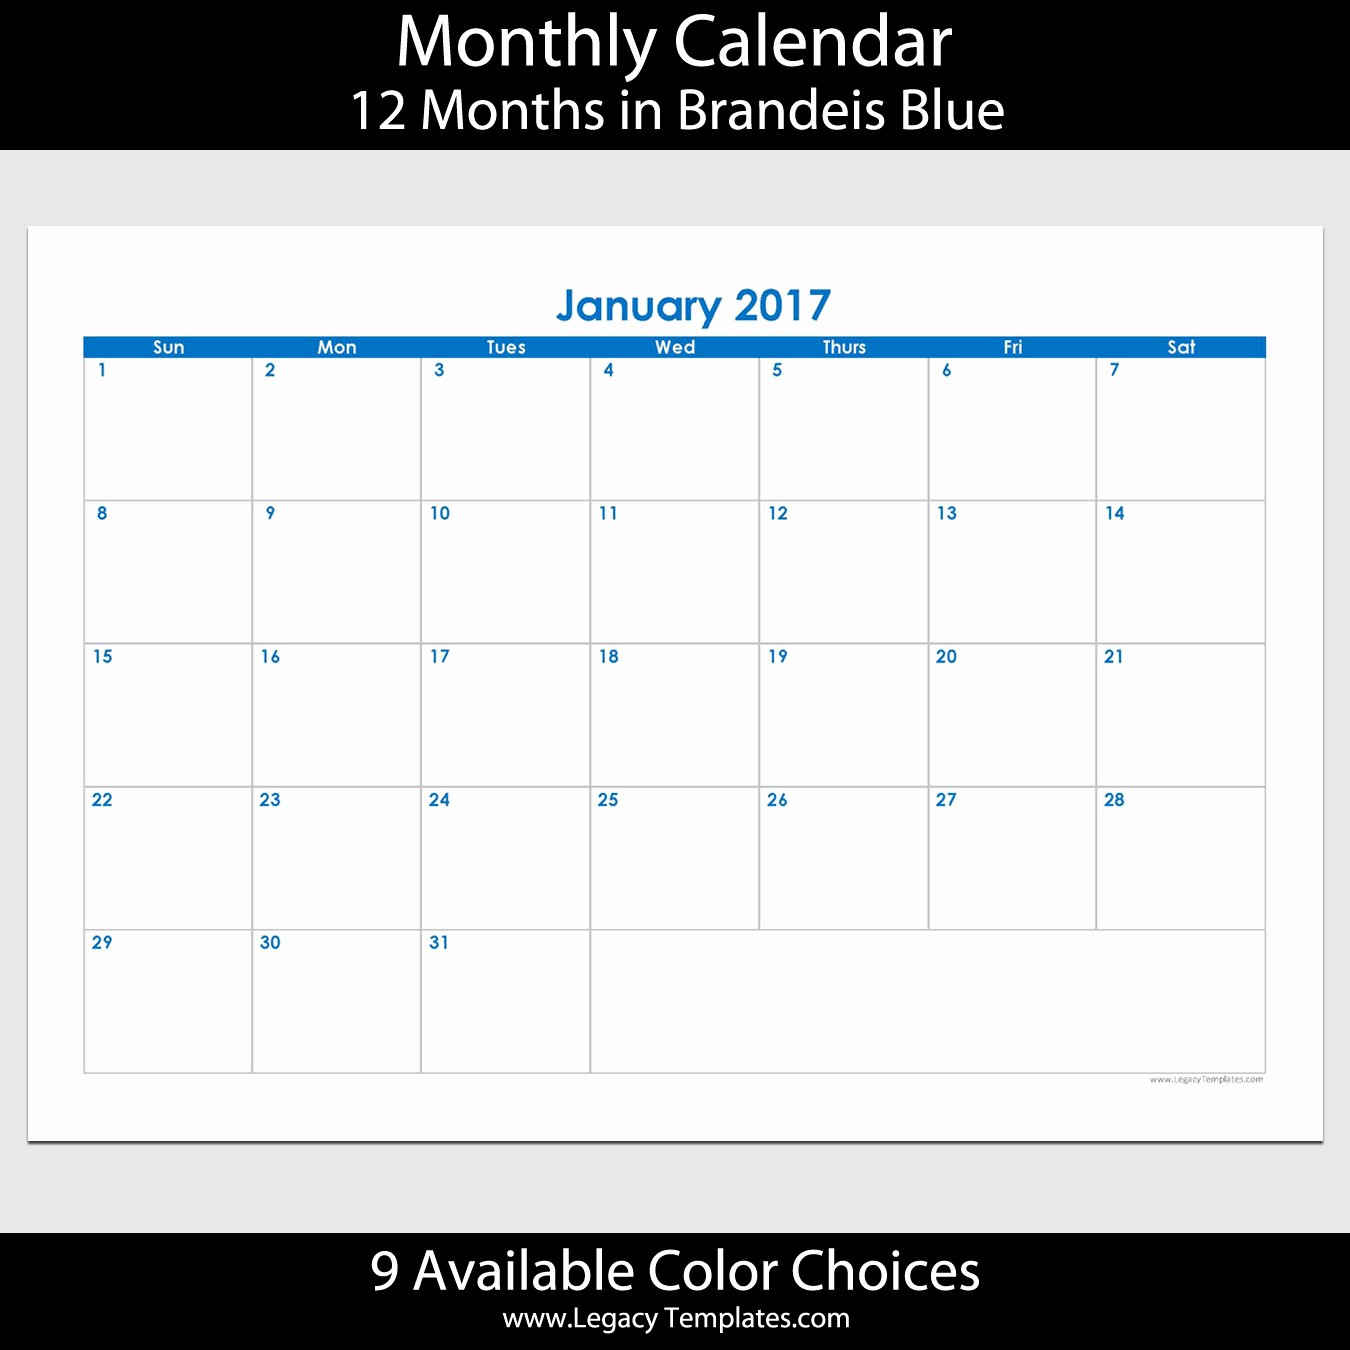 2017 Calendar Month by Month Lovely 2017 12 Month Landscape Calendar – A5